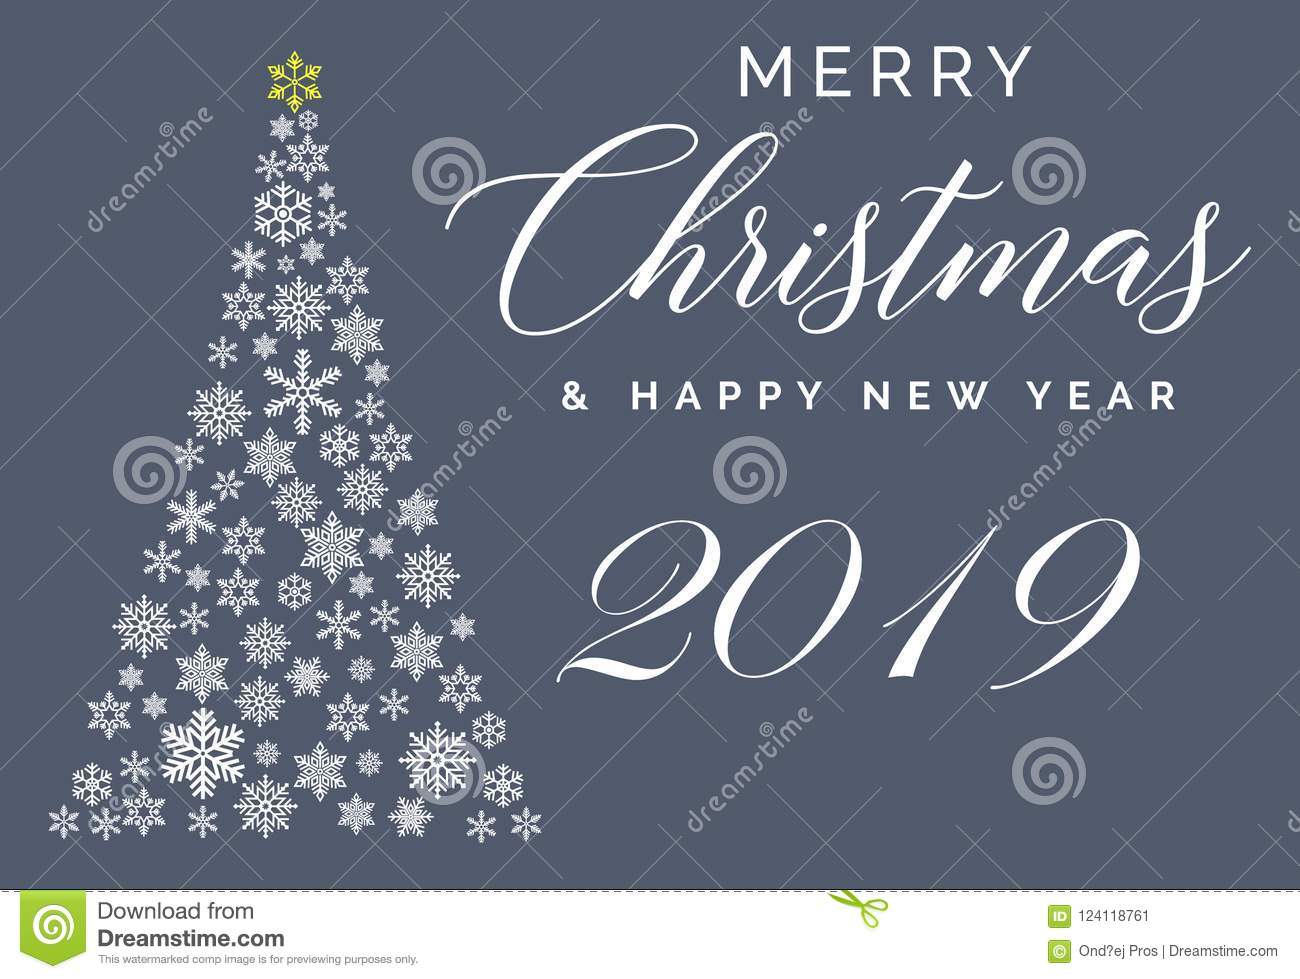 Merry Christmas And Happy New Year 2019 Lettering Template